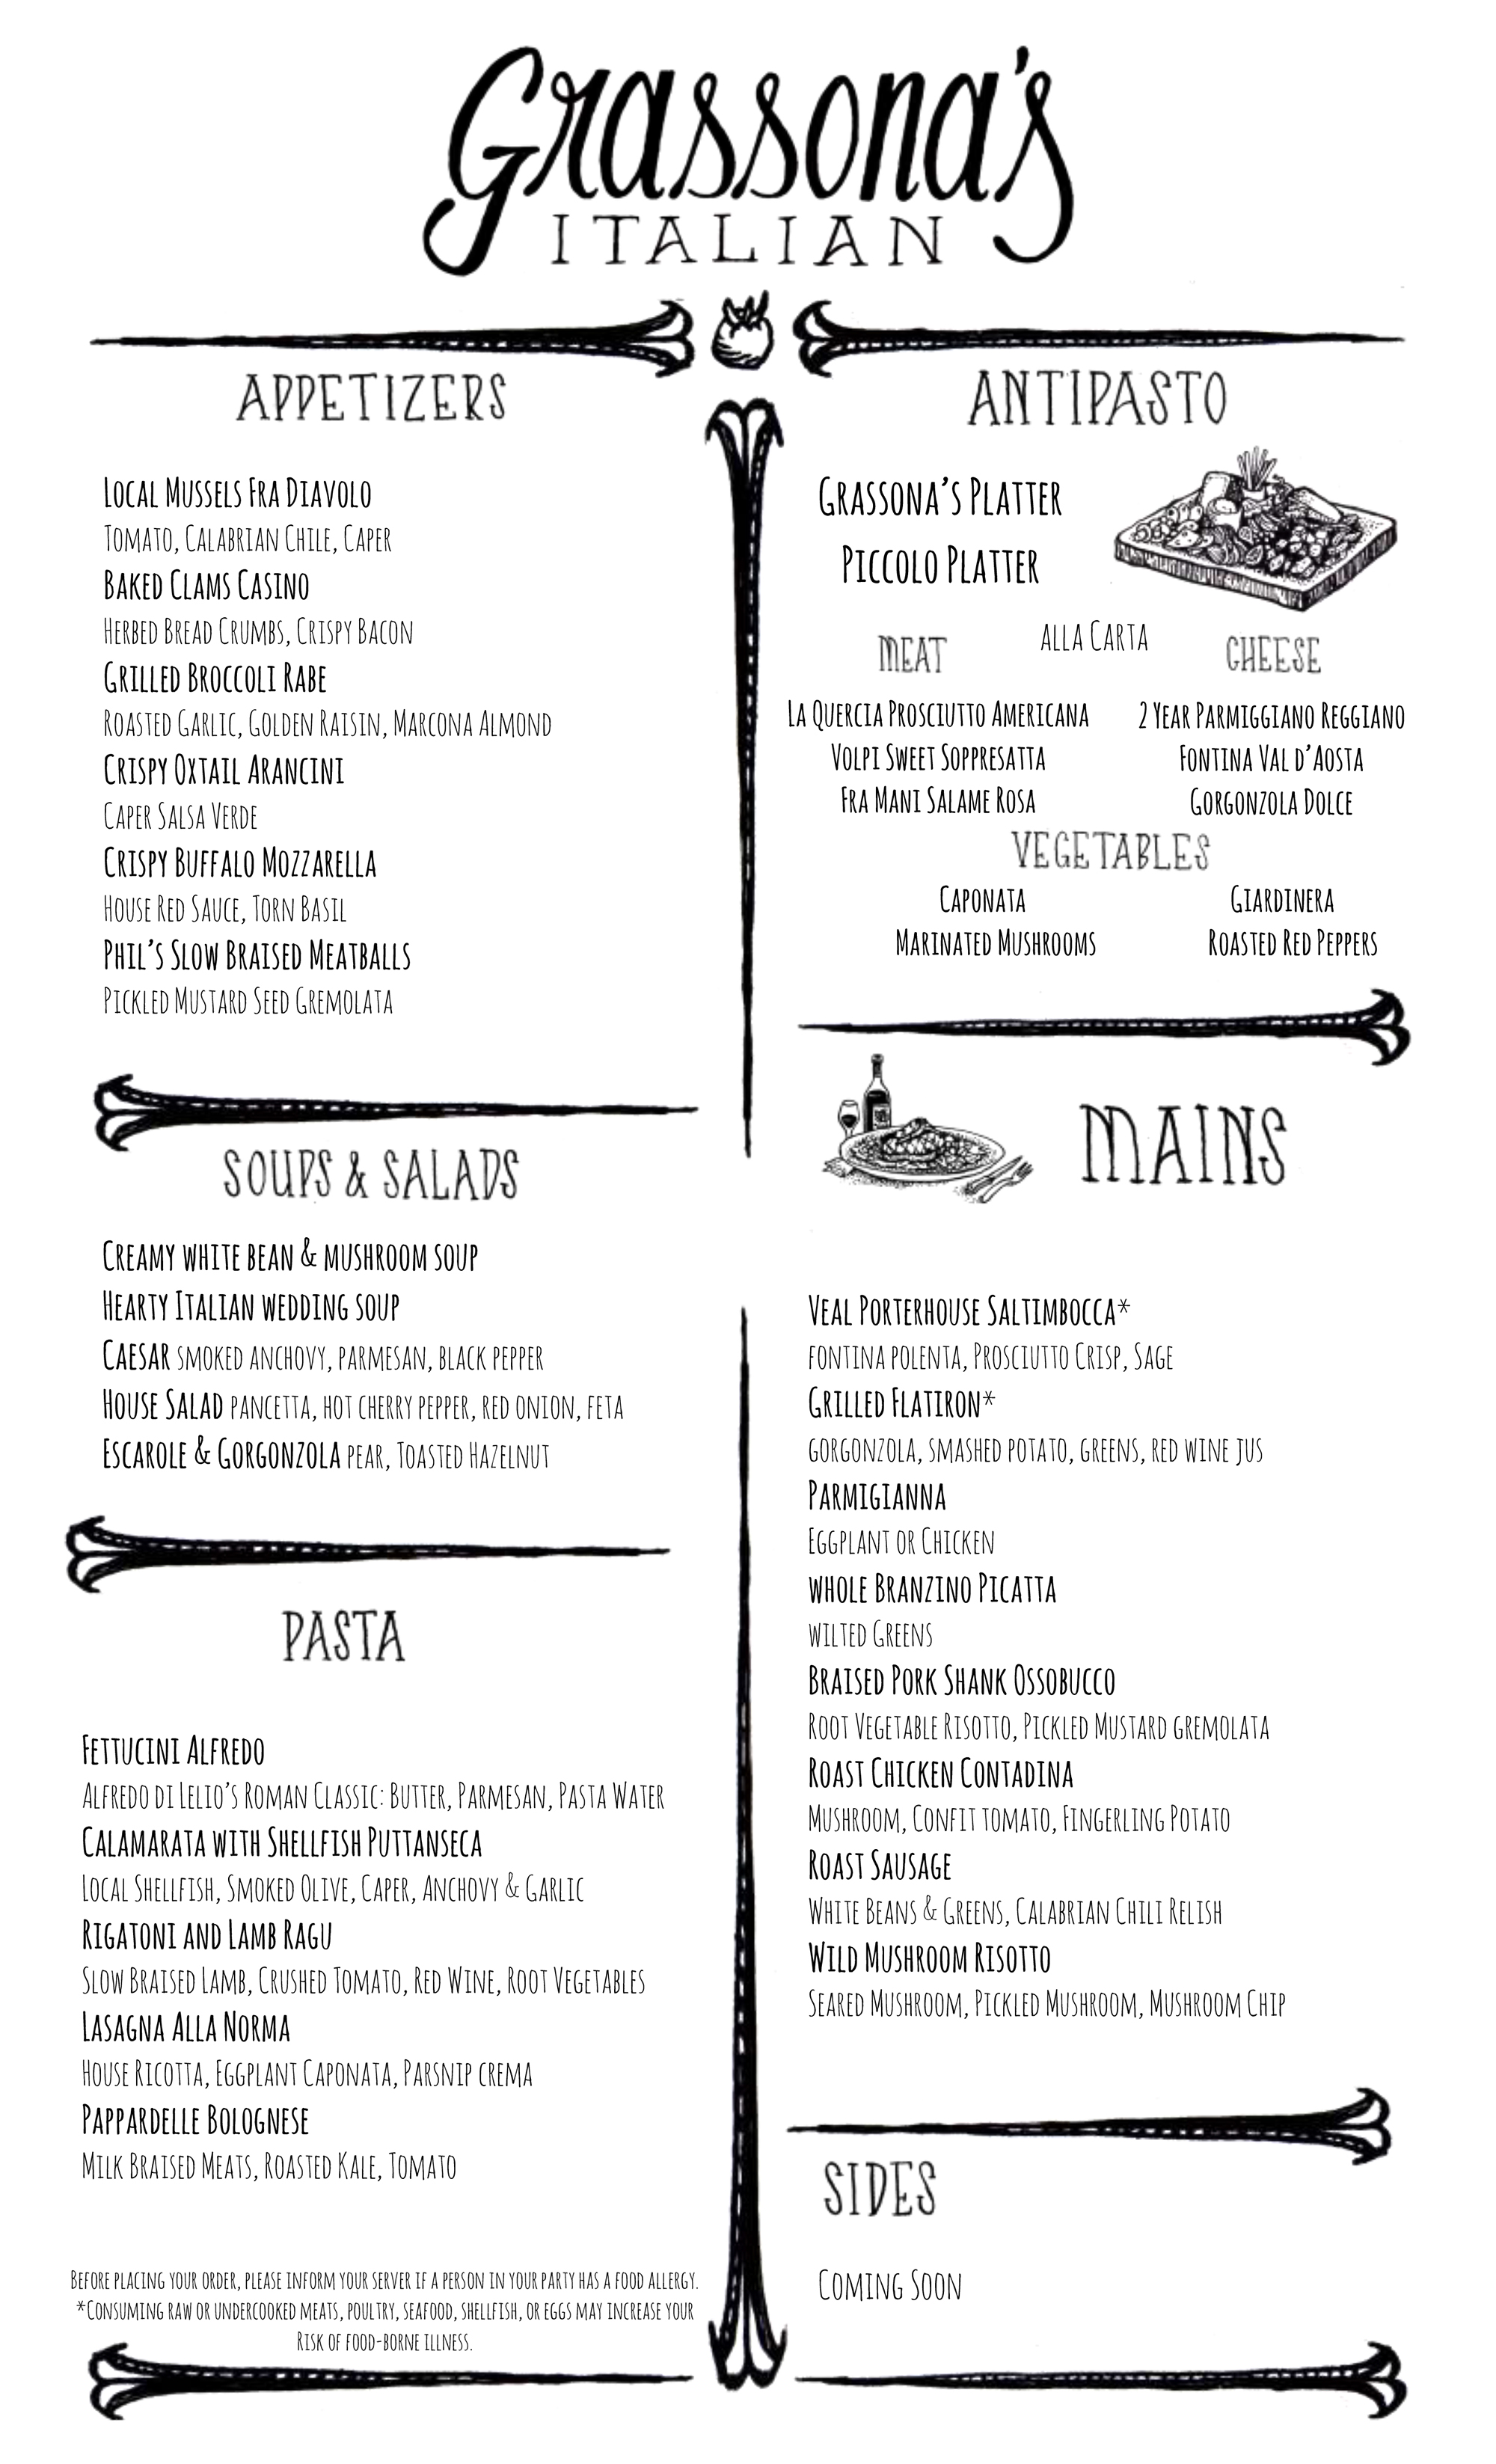 Grassona's Italian opening food Menu